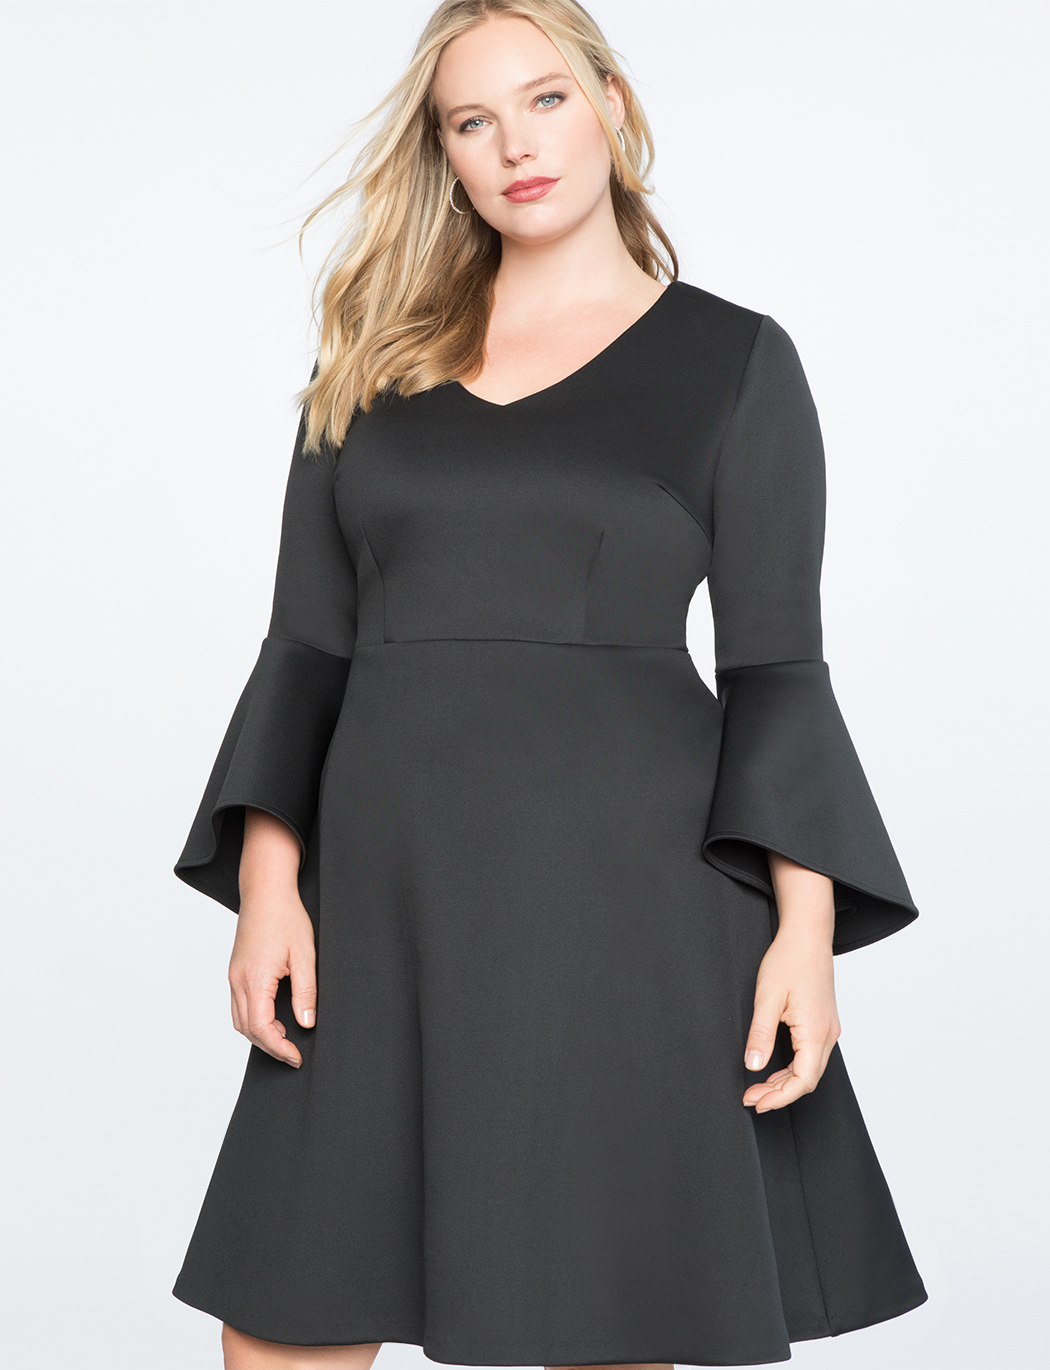 Flare Sleeve Fit and Flare Dress